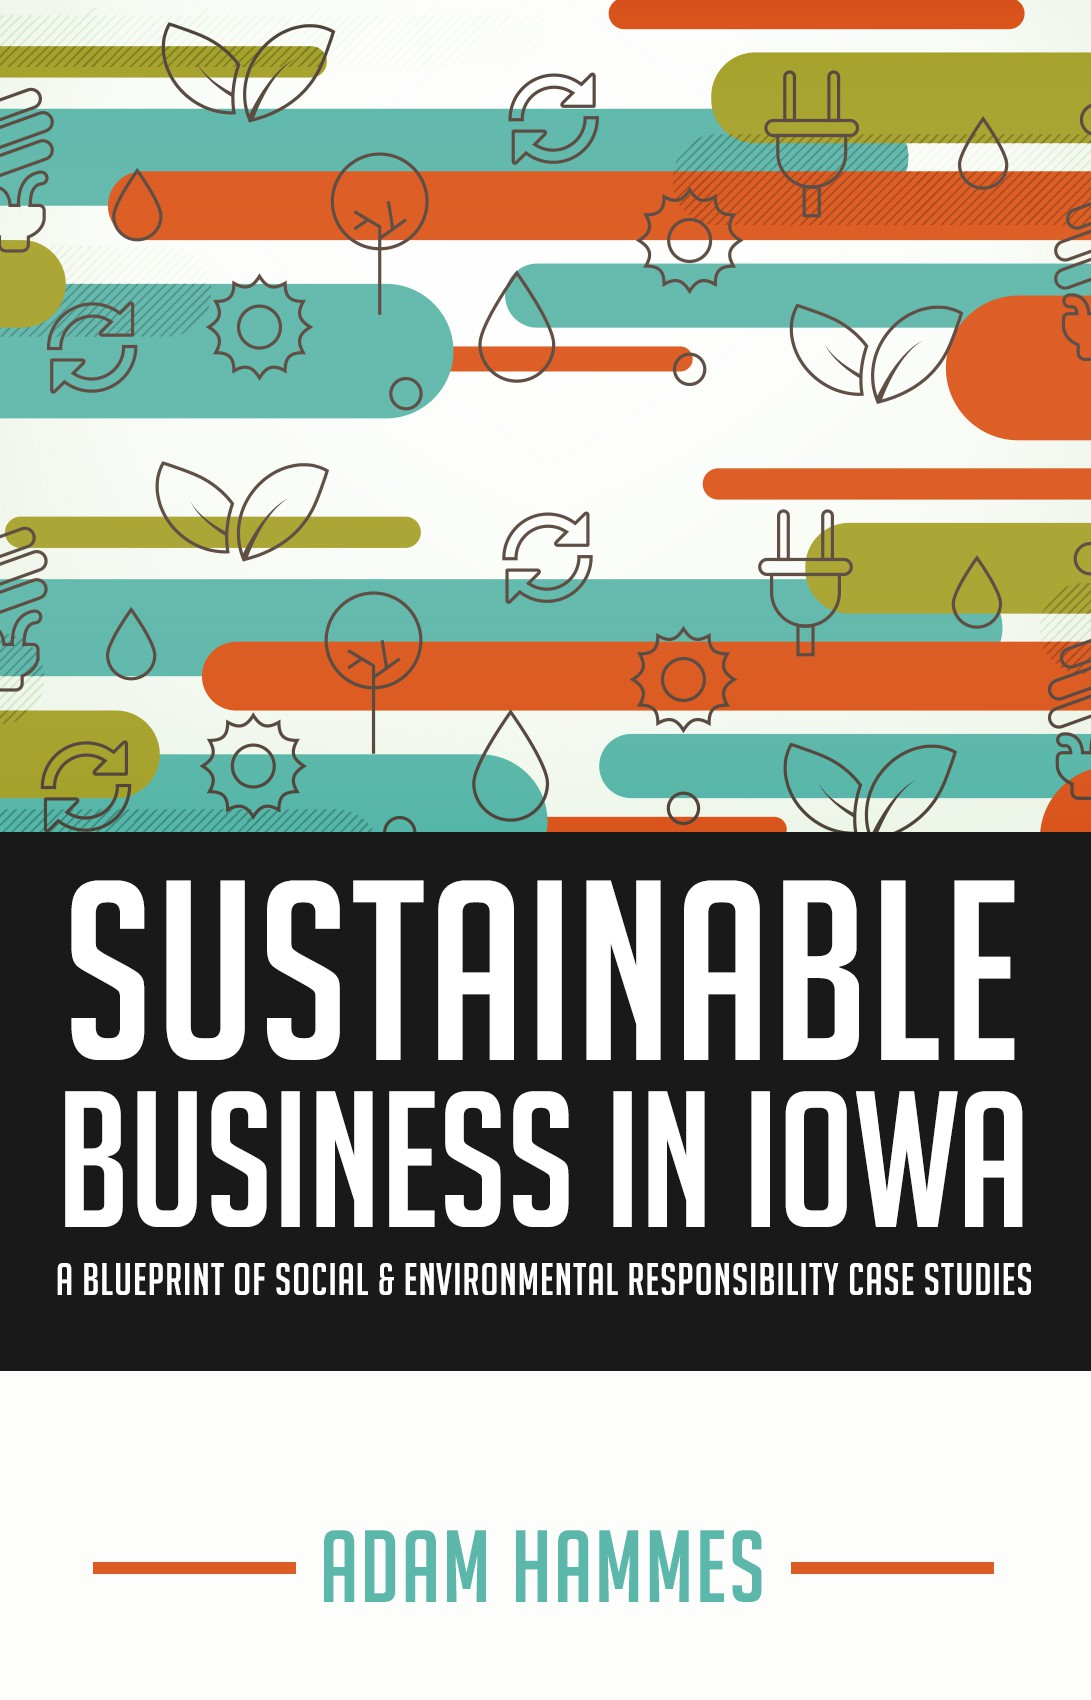 Book #2 - Sustainable Business in Iowa